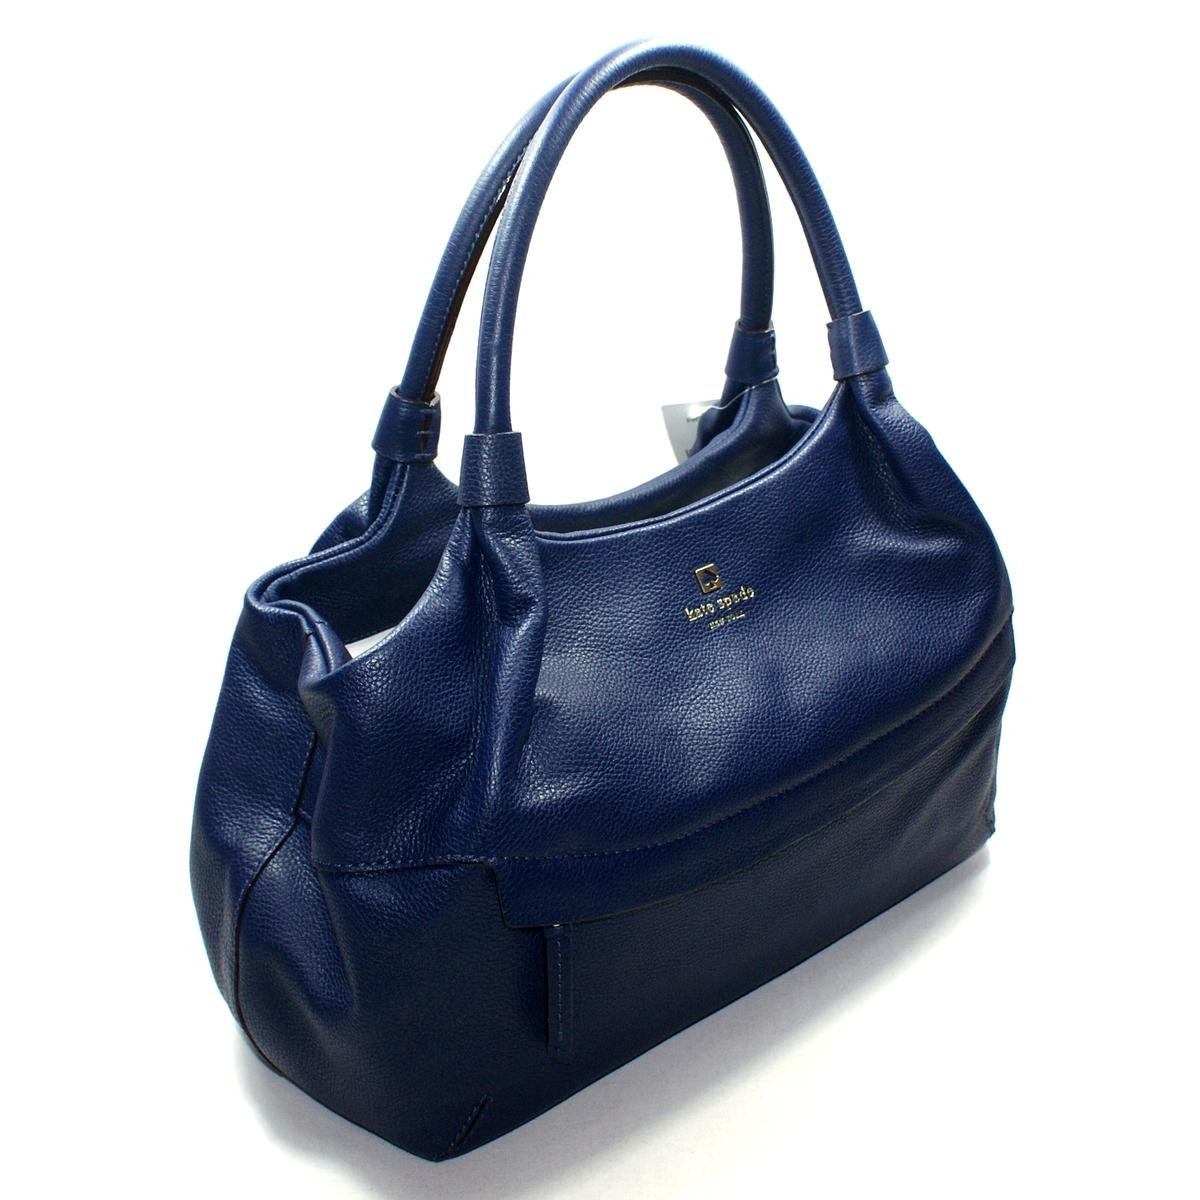 Givenchy Horizon Medium Leather Satchel Bag, Navy Details Givenchy smooth calf leather satchel bag. Shiny palladium hardware. Rolled top handles,